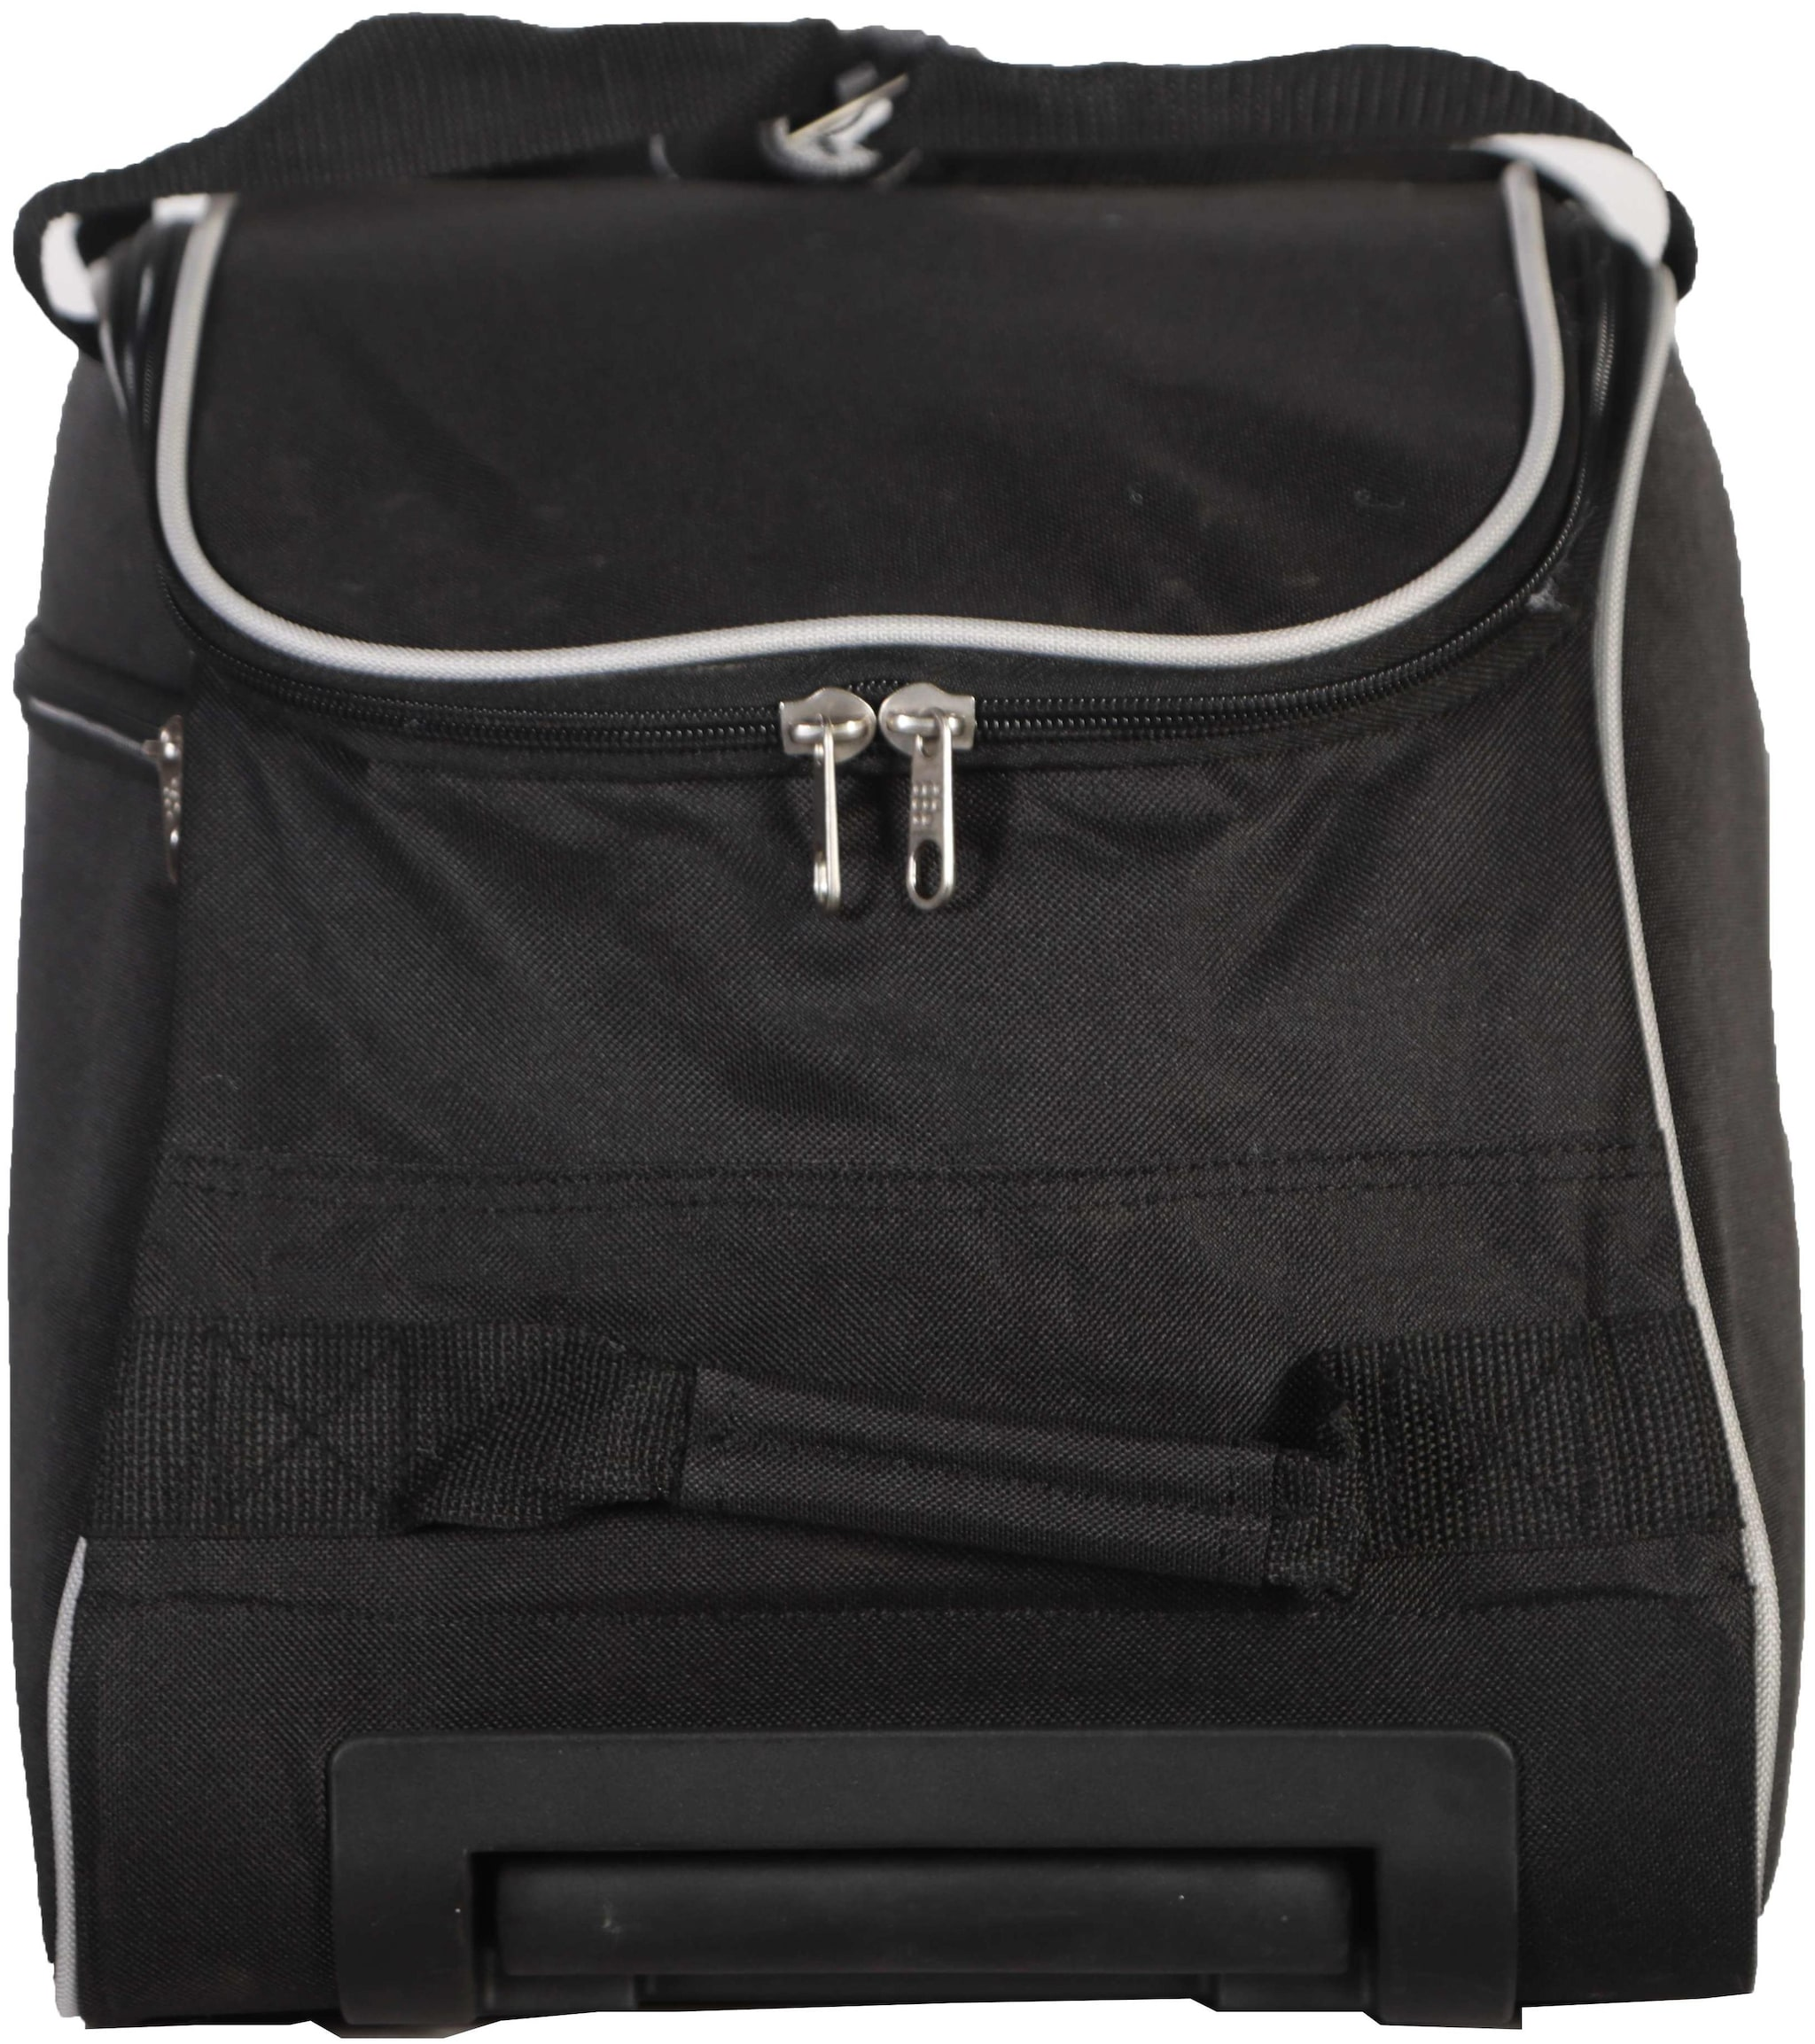 ebf08cd0922 Buy Kamiliant Polyester Men Duffle Bag - Black Online at Low Prices in  India - Paytmmall.com